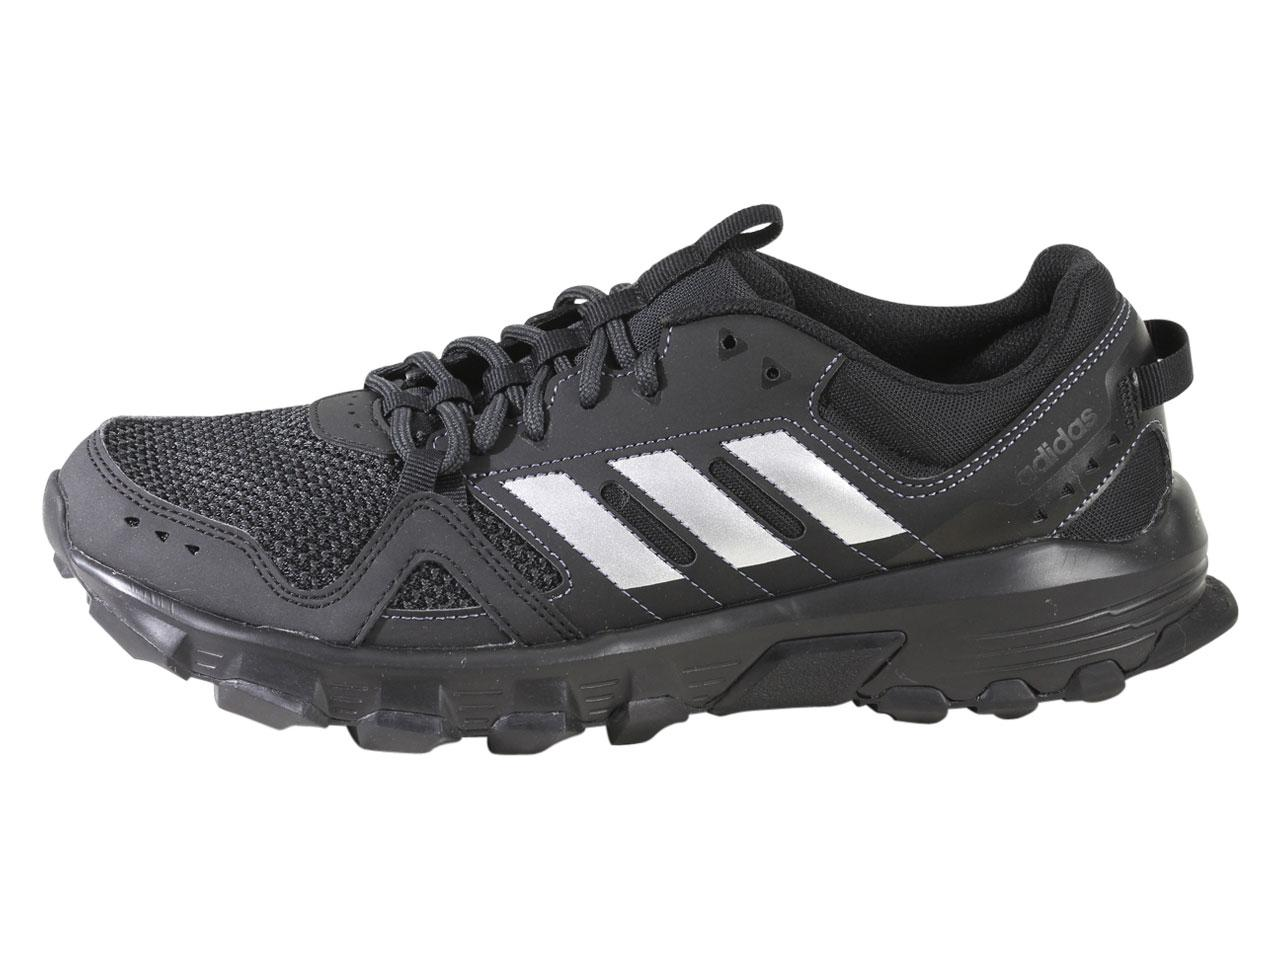 870a62a383719 Adidas Men s Rockadia Trail Running Sneakers Shoes